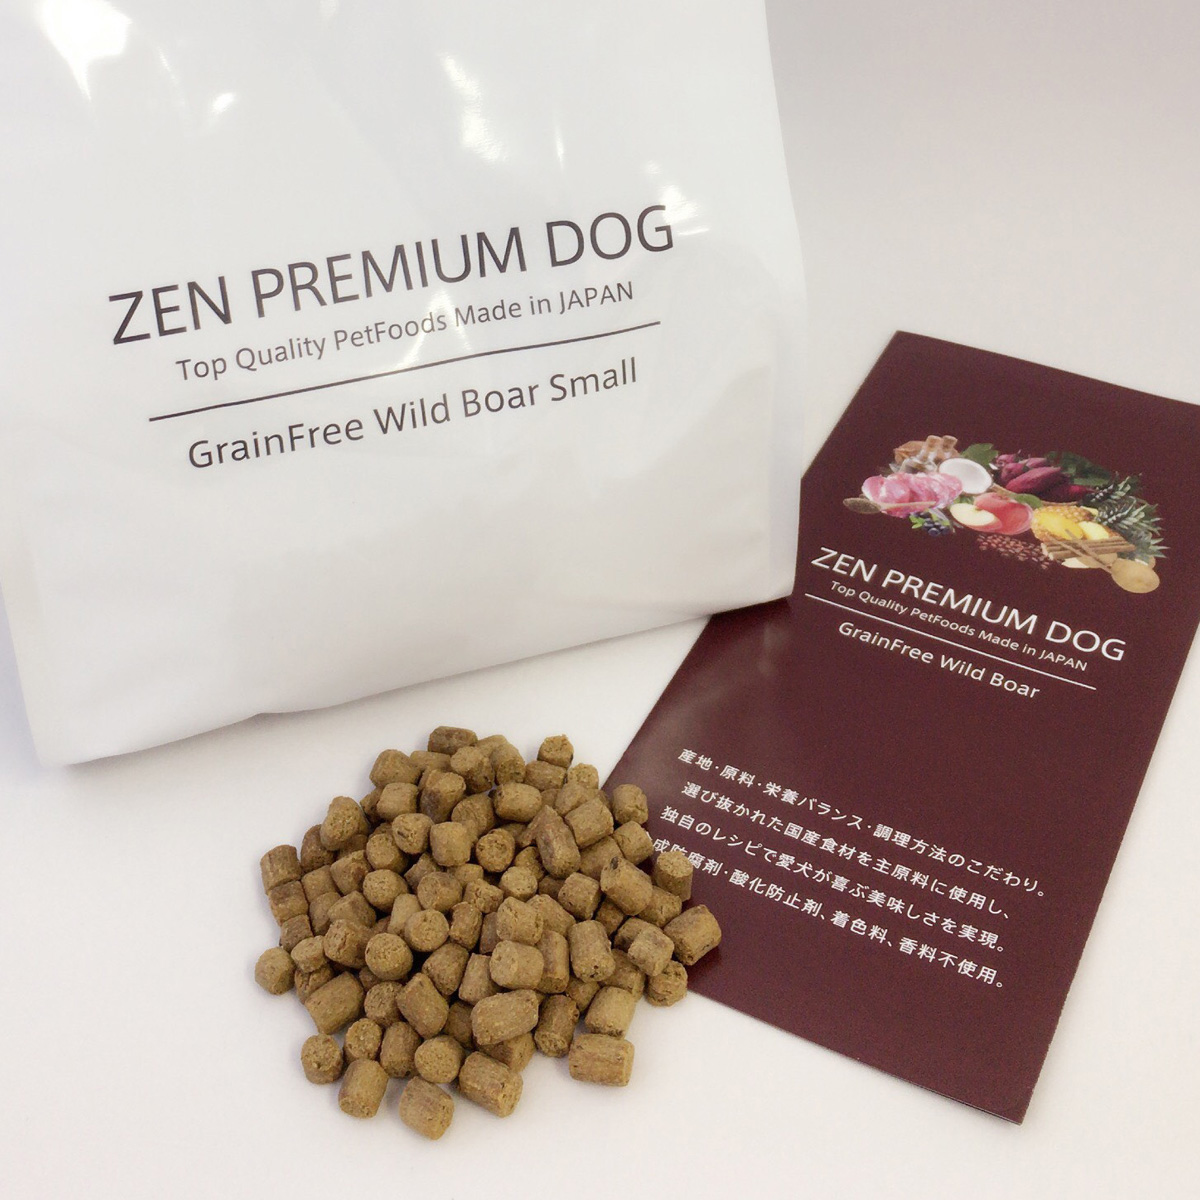 zen_premium_dog_grainfree_wild_boar_square001